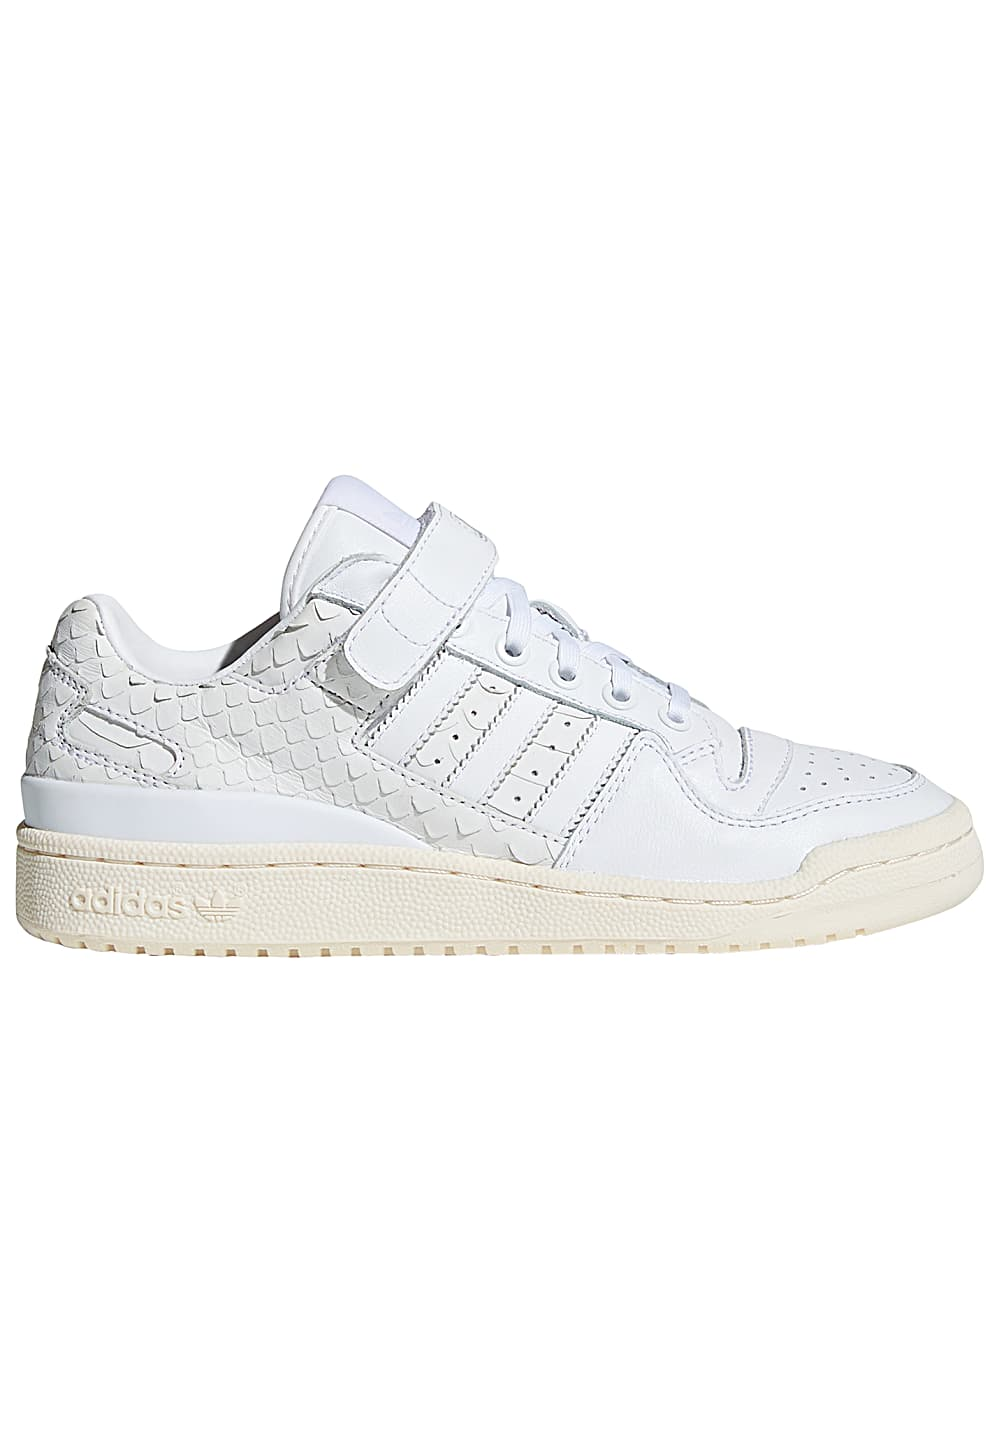 chaussures de sport 87b3c 1205f ADIDAS ORIGINALS Forum Lo - Sneakers for Women - White